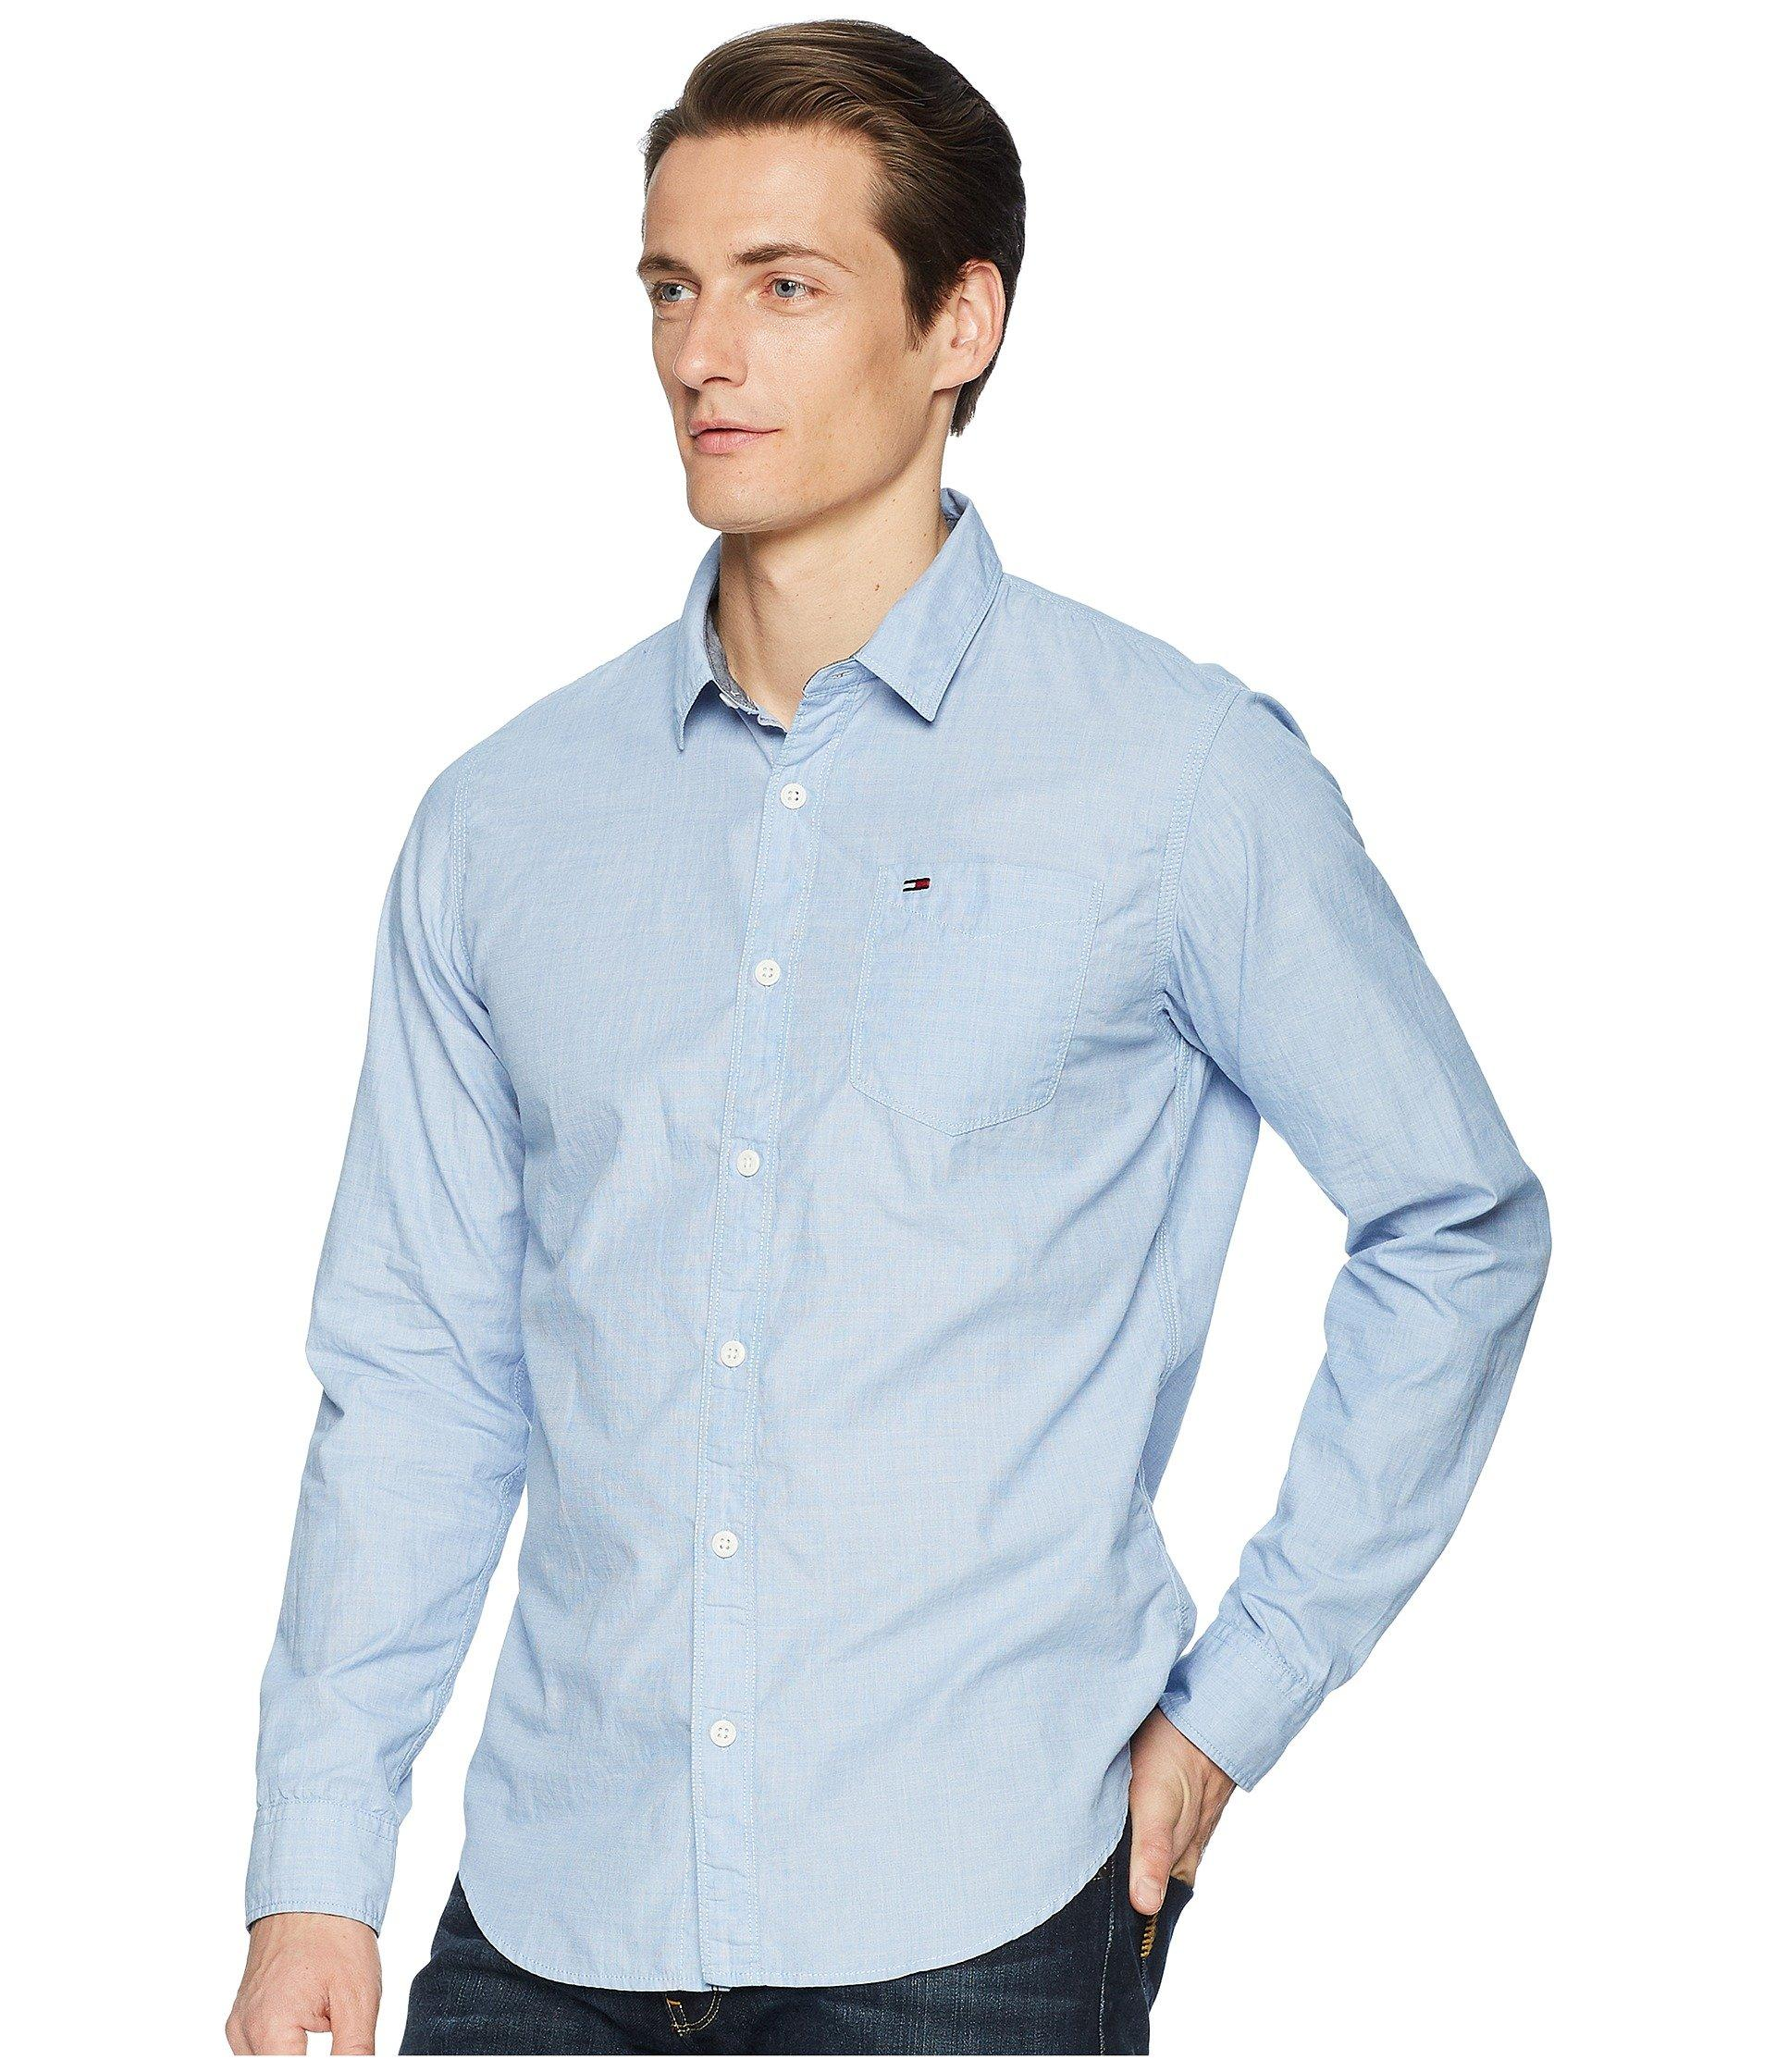 8ae78fe5c7f5 Lyst - Tommy Hilfiger End On End Button Down Shirt (classic White) Men s  Clothing in Blue for Men